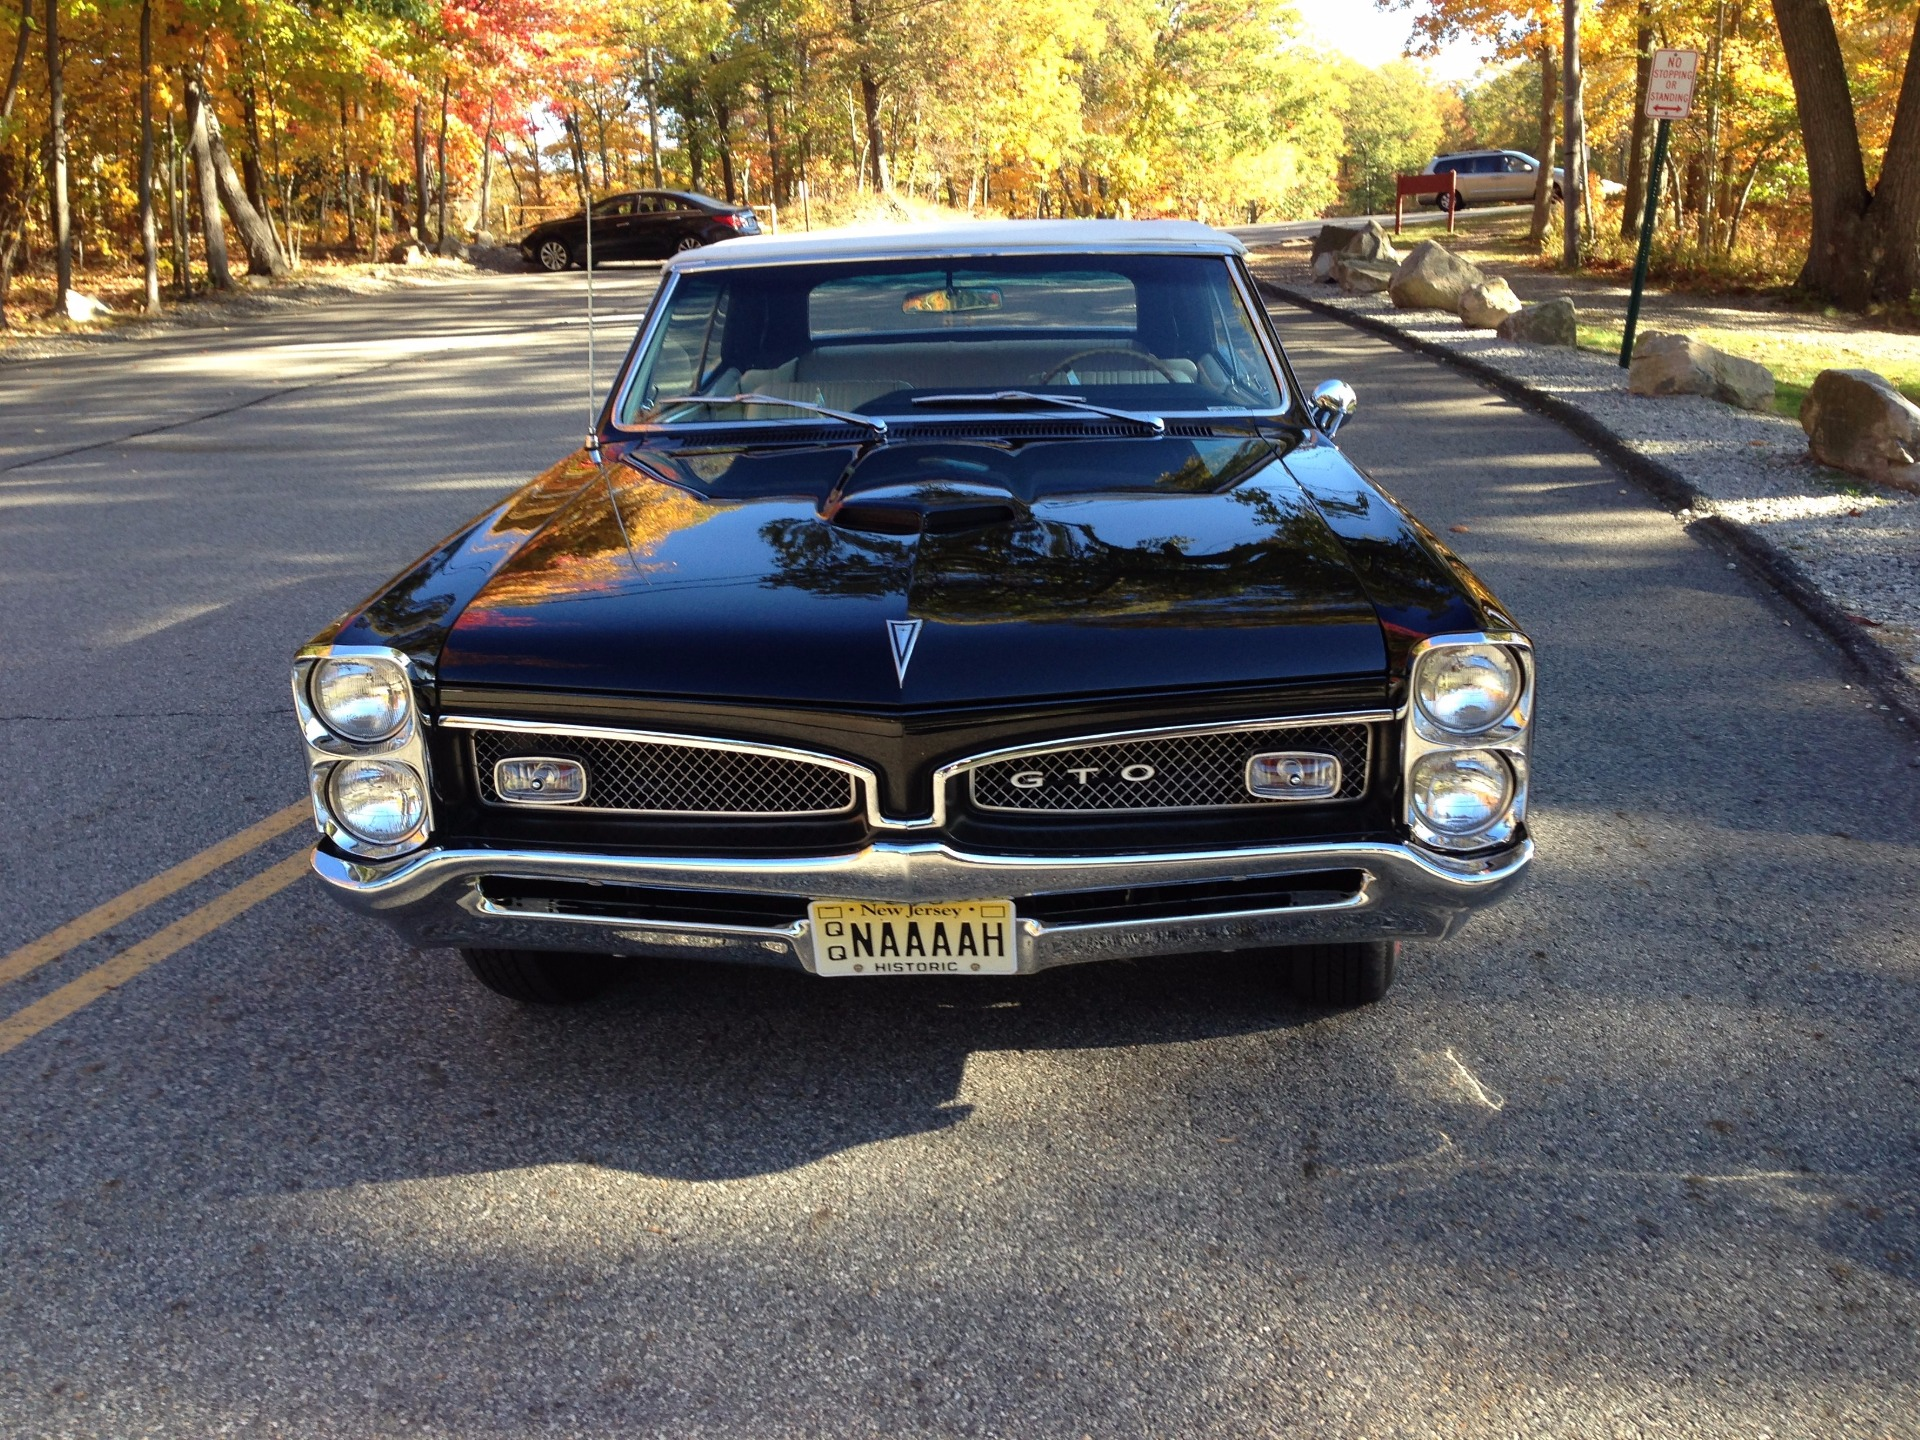 Used Car Dealers In Northern Nj: 1967 Pontiac GTO Stock # 2259-12604 For Sale Near New York